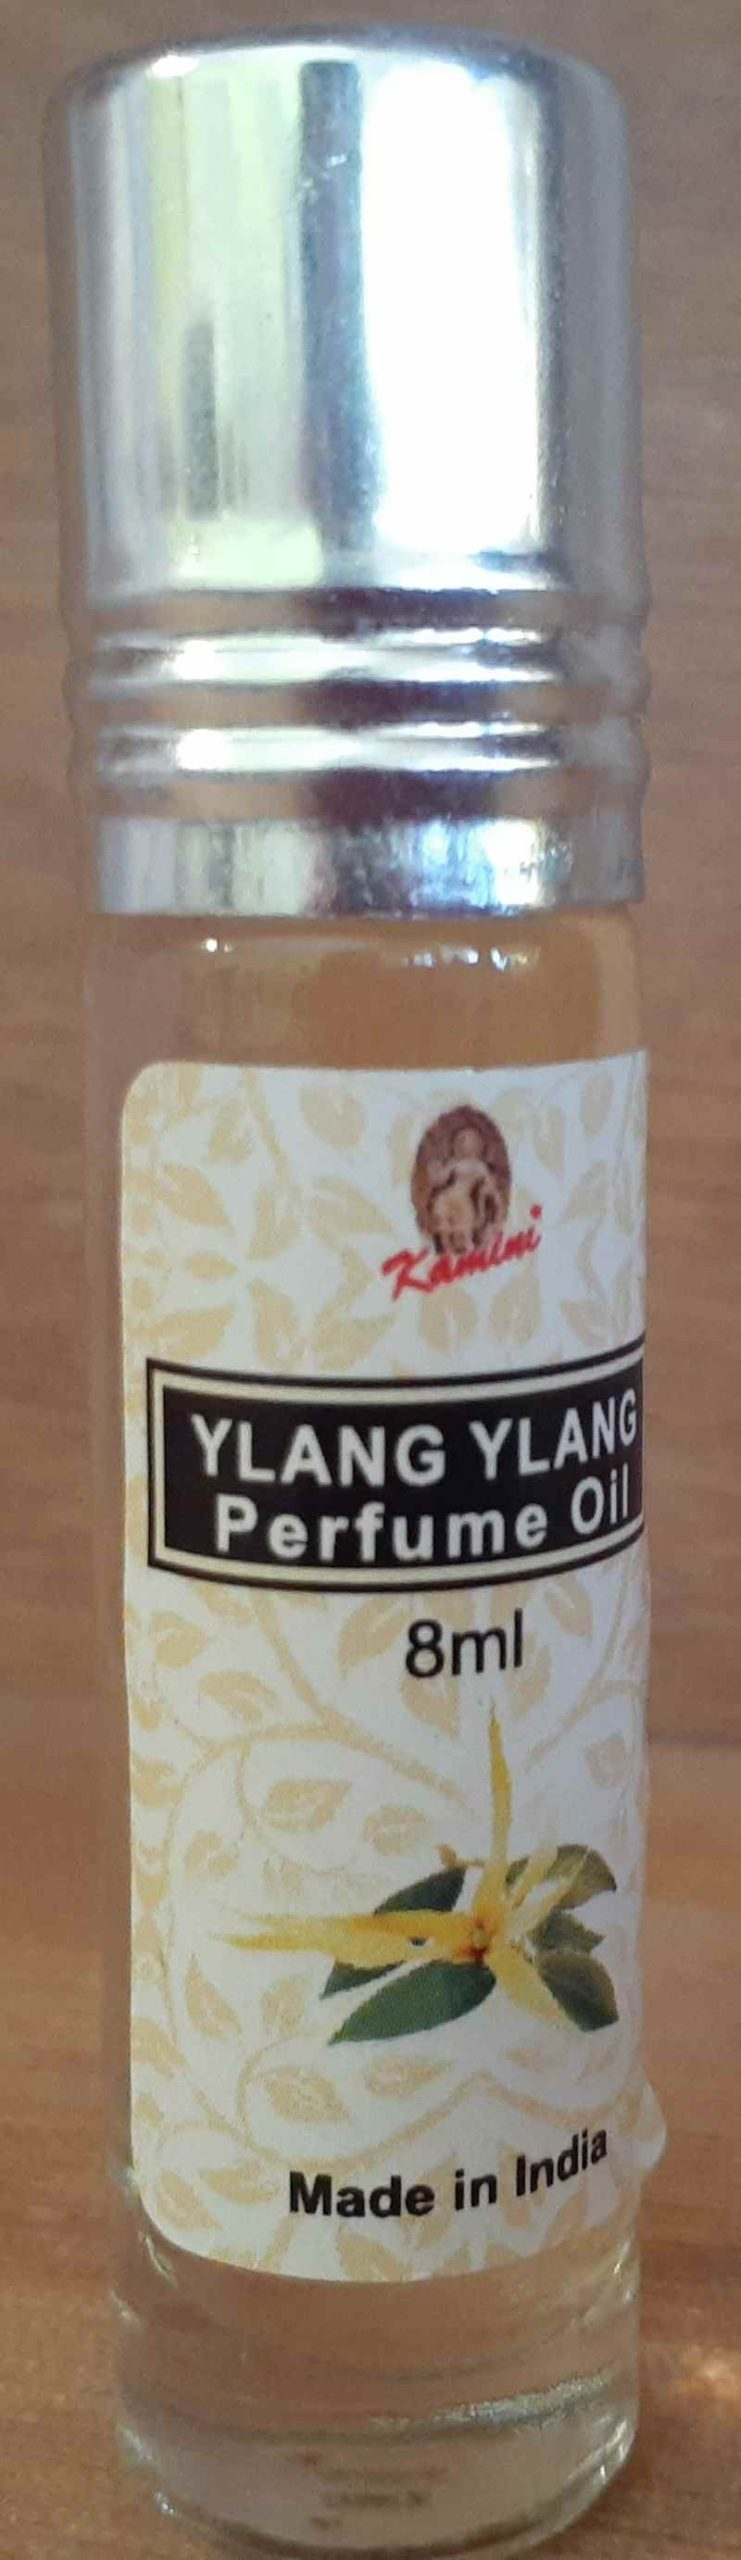 KARNINI PERFUME OIL YLANG YLANG 8ML